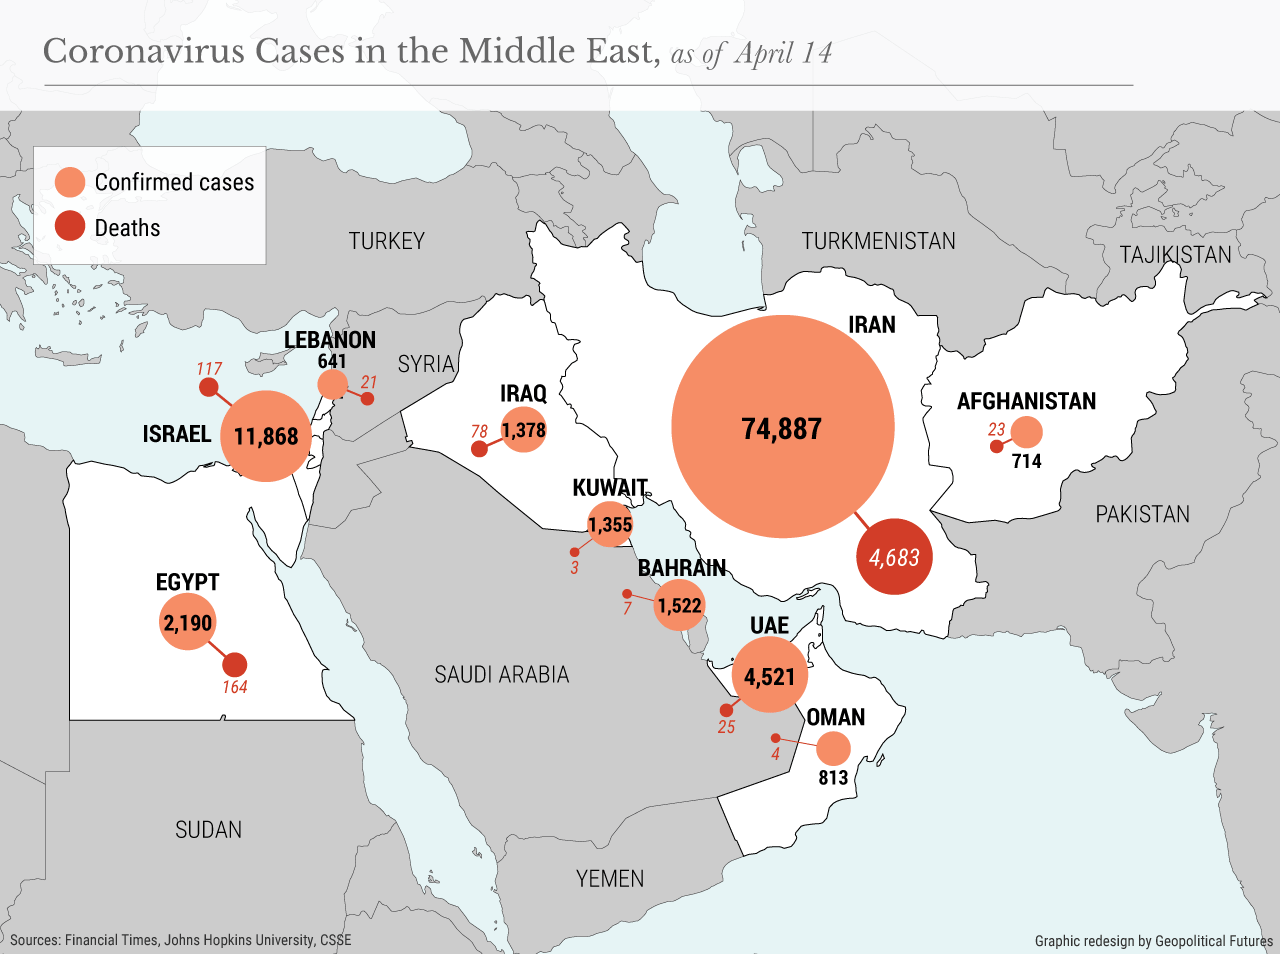 Coronavirus Cases in the Middle East, as of April 14